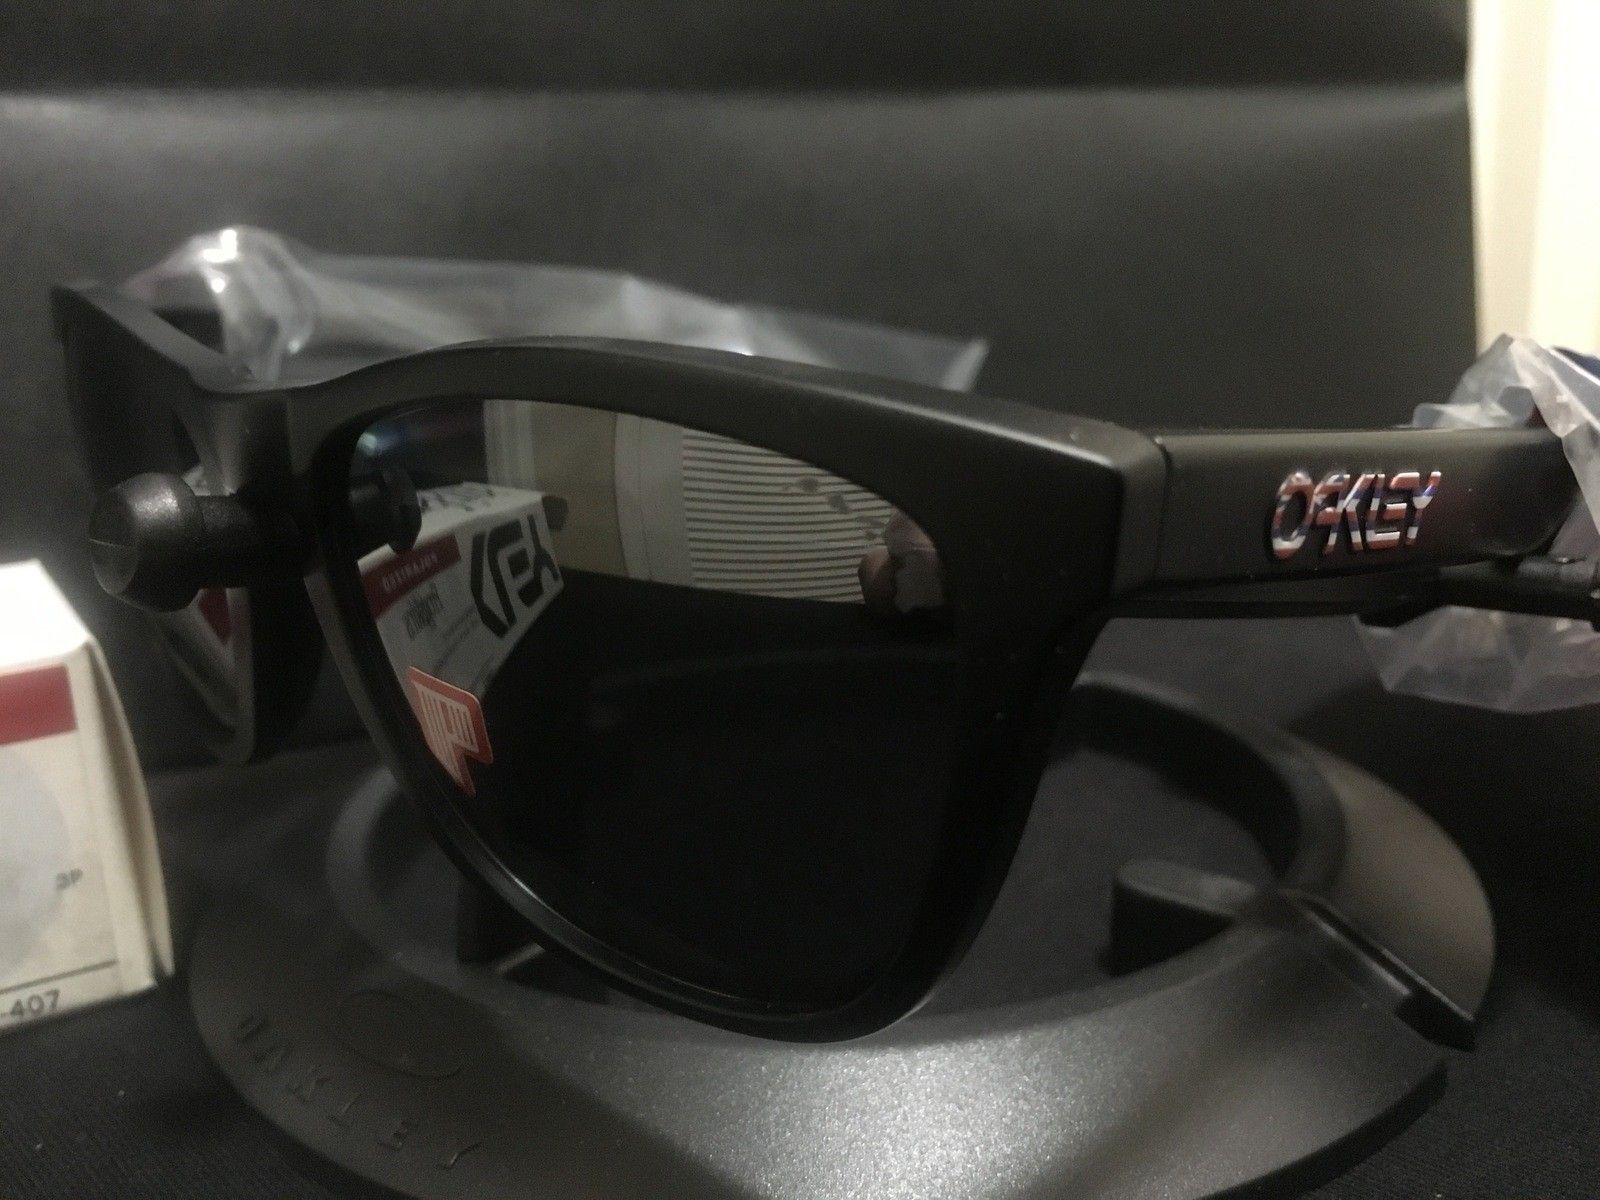 BNIB Polarized Hawaii Frogskins - IMG_0452.JPG